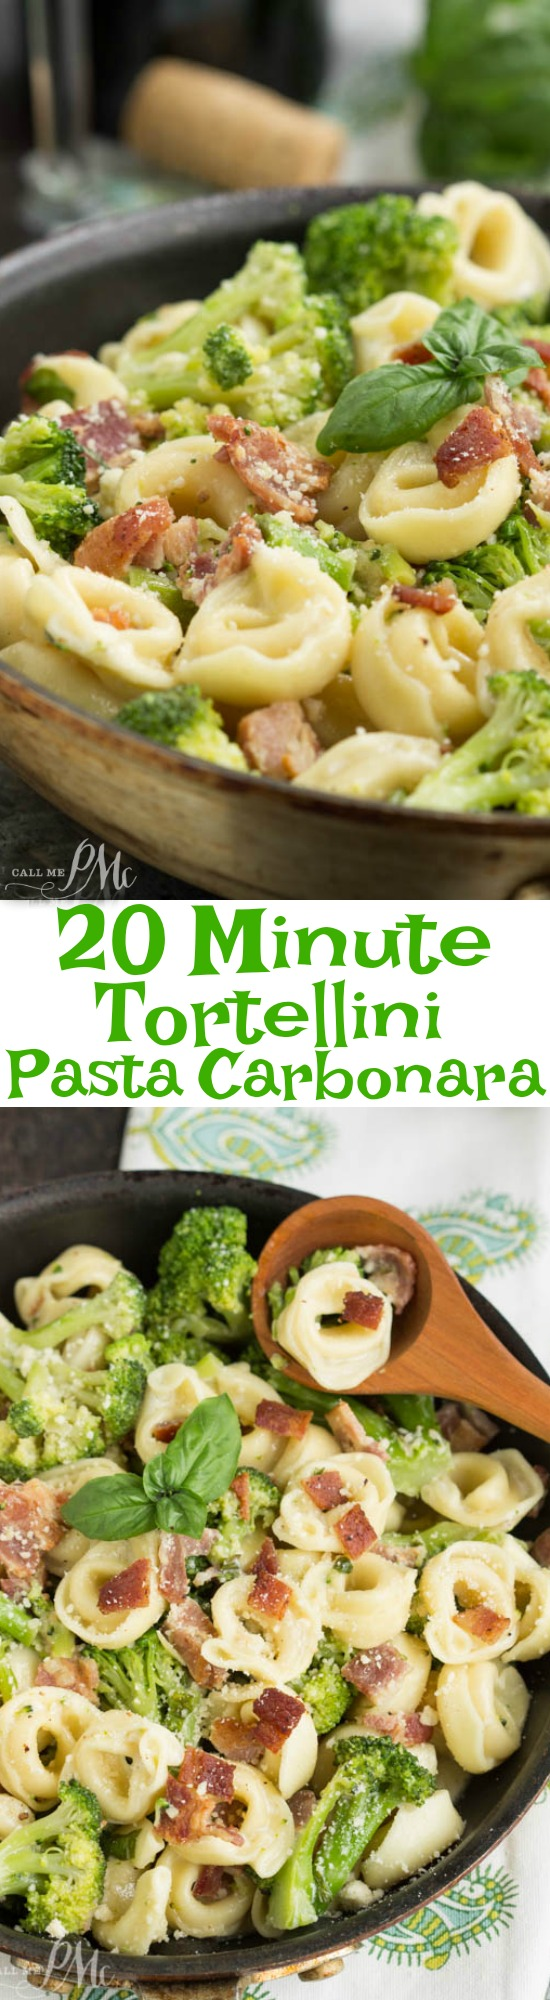 20 Minute Tortellini Pasta Carbonara. Bacon and broccoli are tossed with tortellini pasta and a light cream sauce for a scrumptious quick and easy meal. This easy mid-week pasta recipe is loaded with flavors and textures.